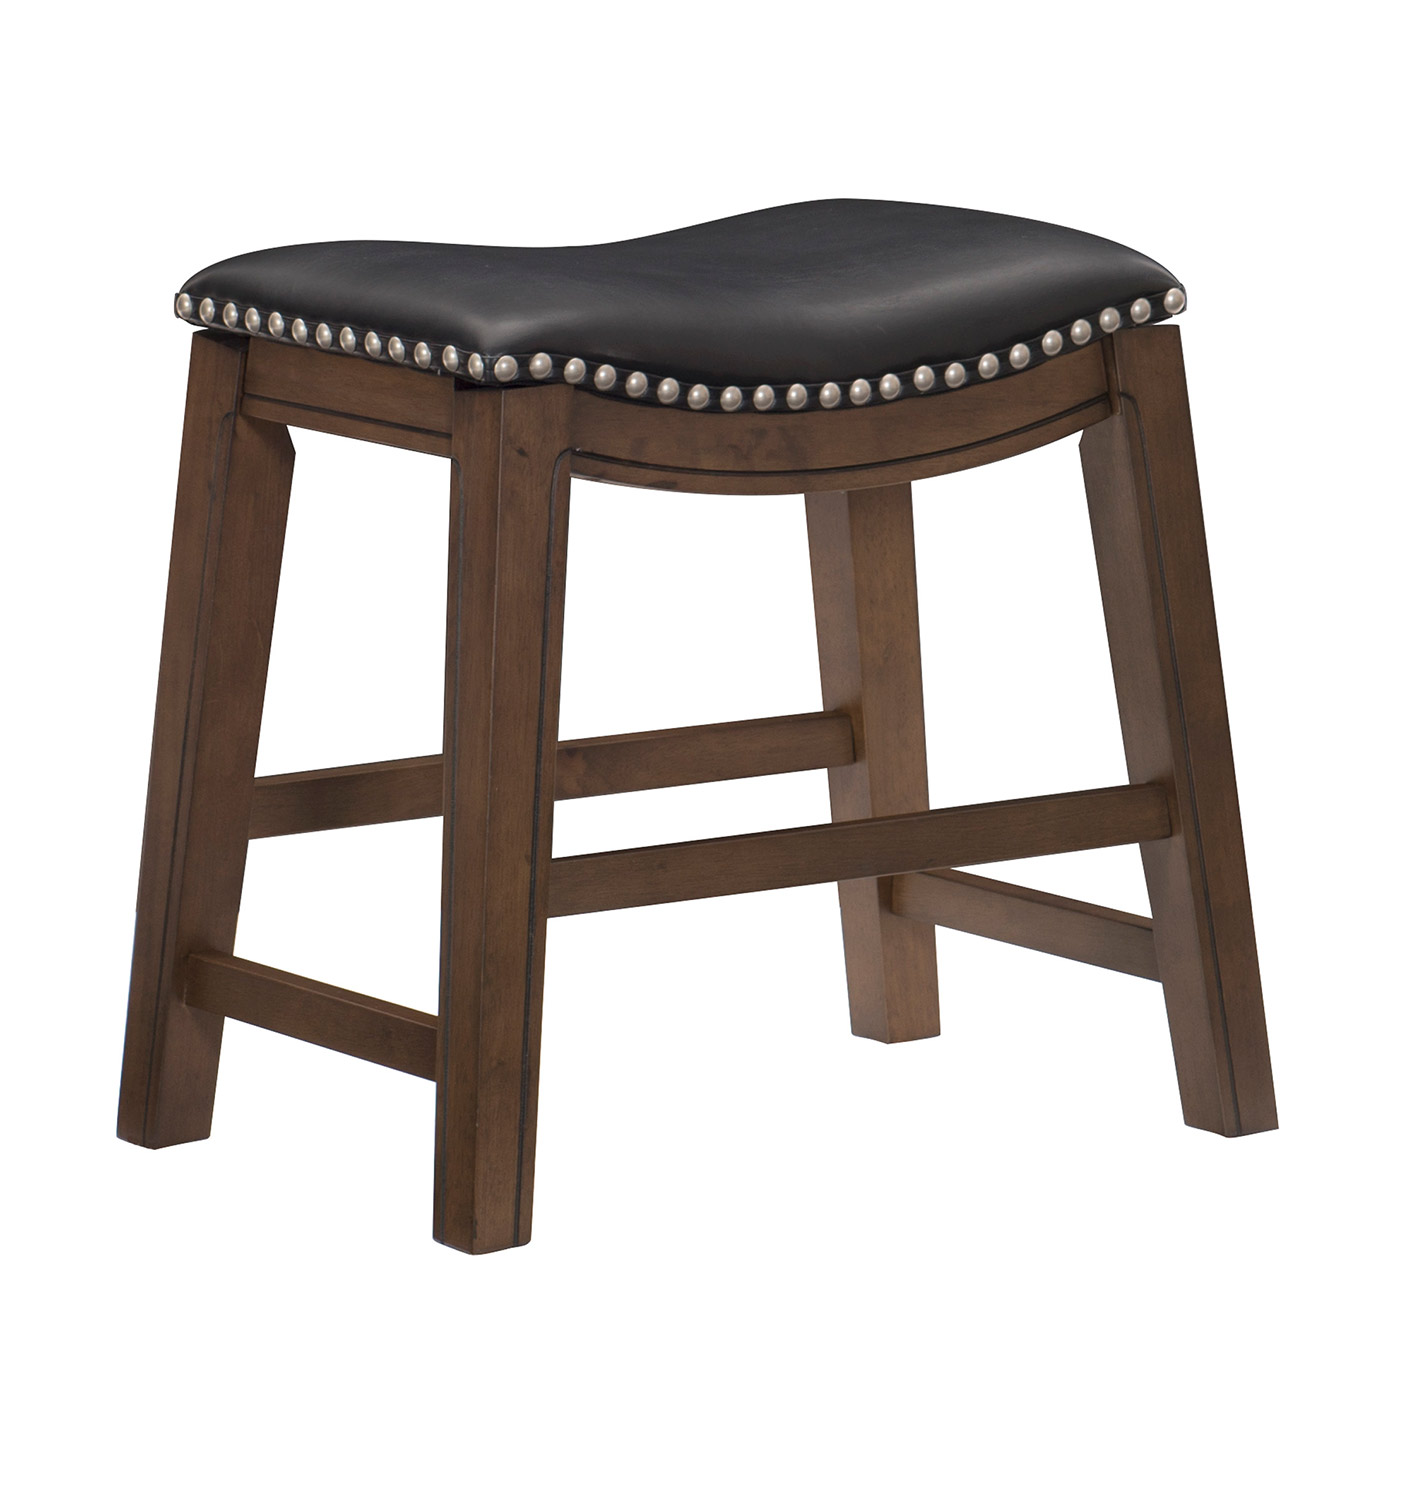 Homelegance 18 SH Stool - Black